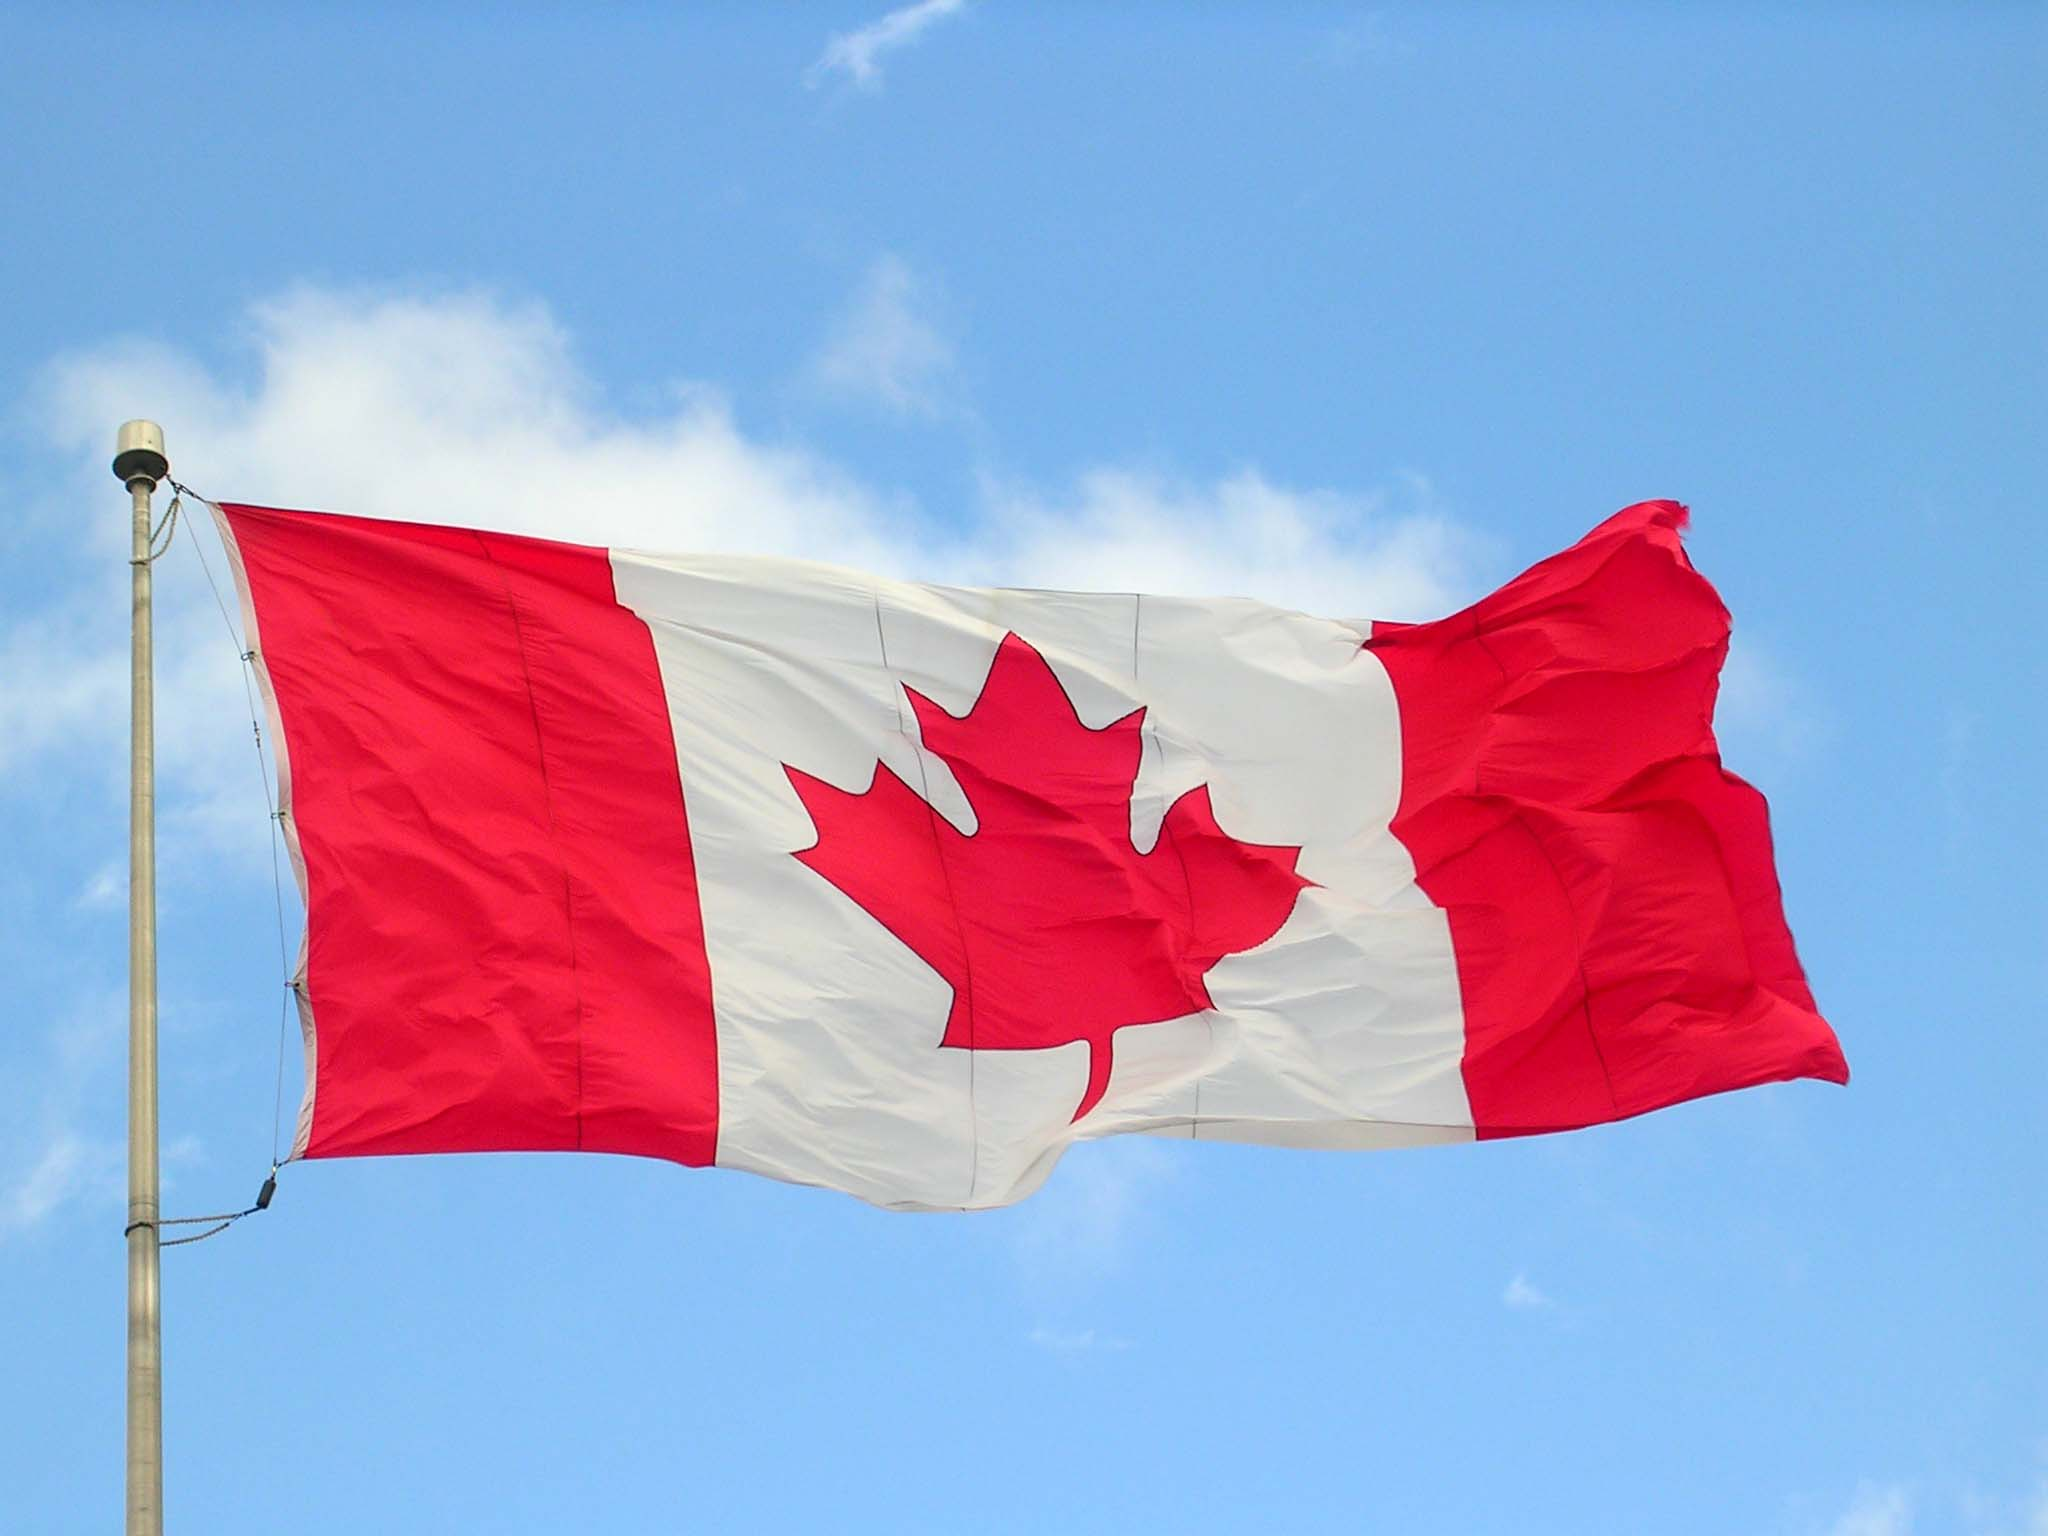 Approval has been given for the export of British manufacturing beef to Canada